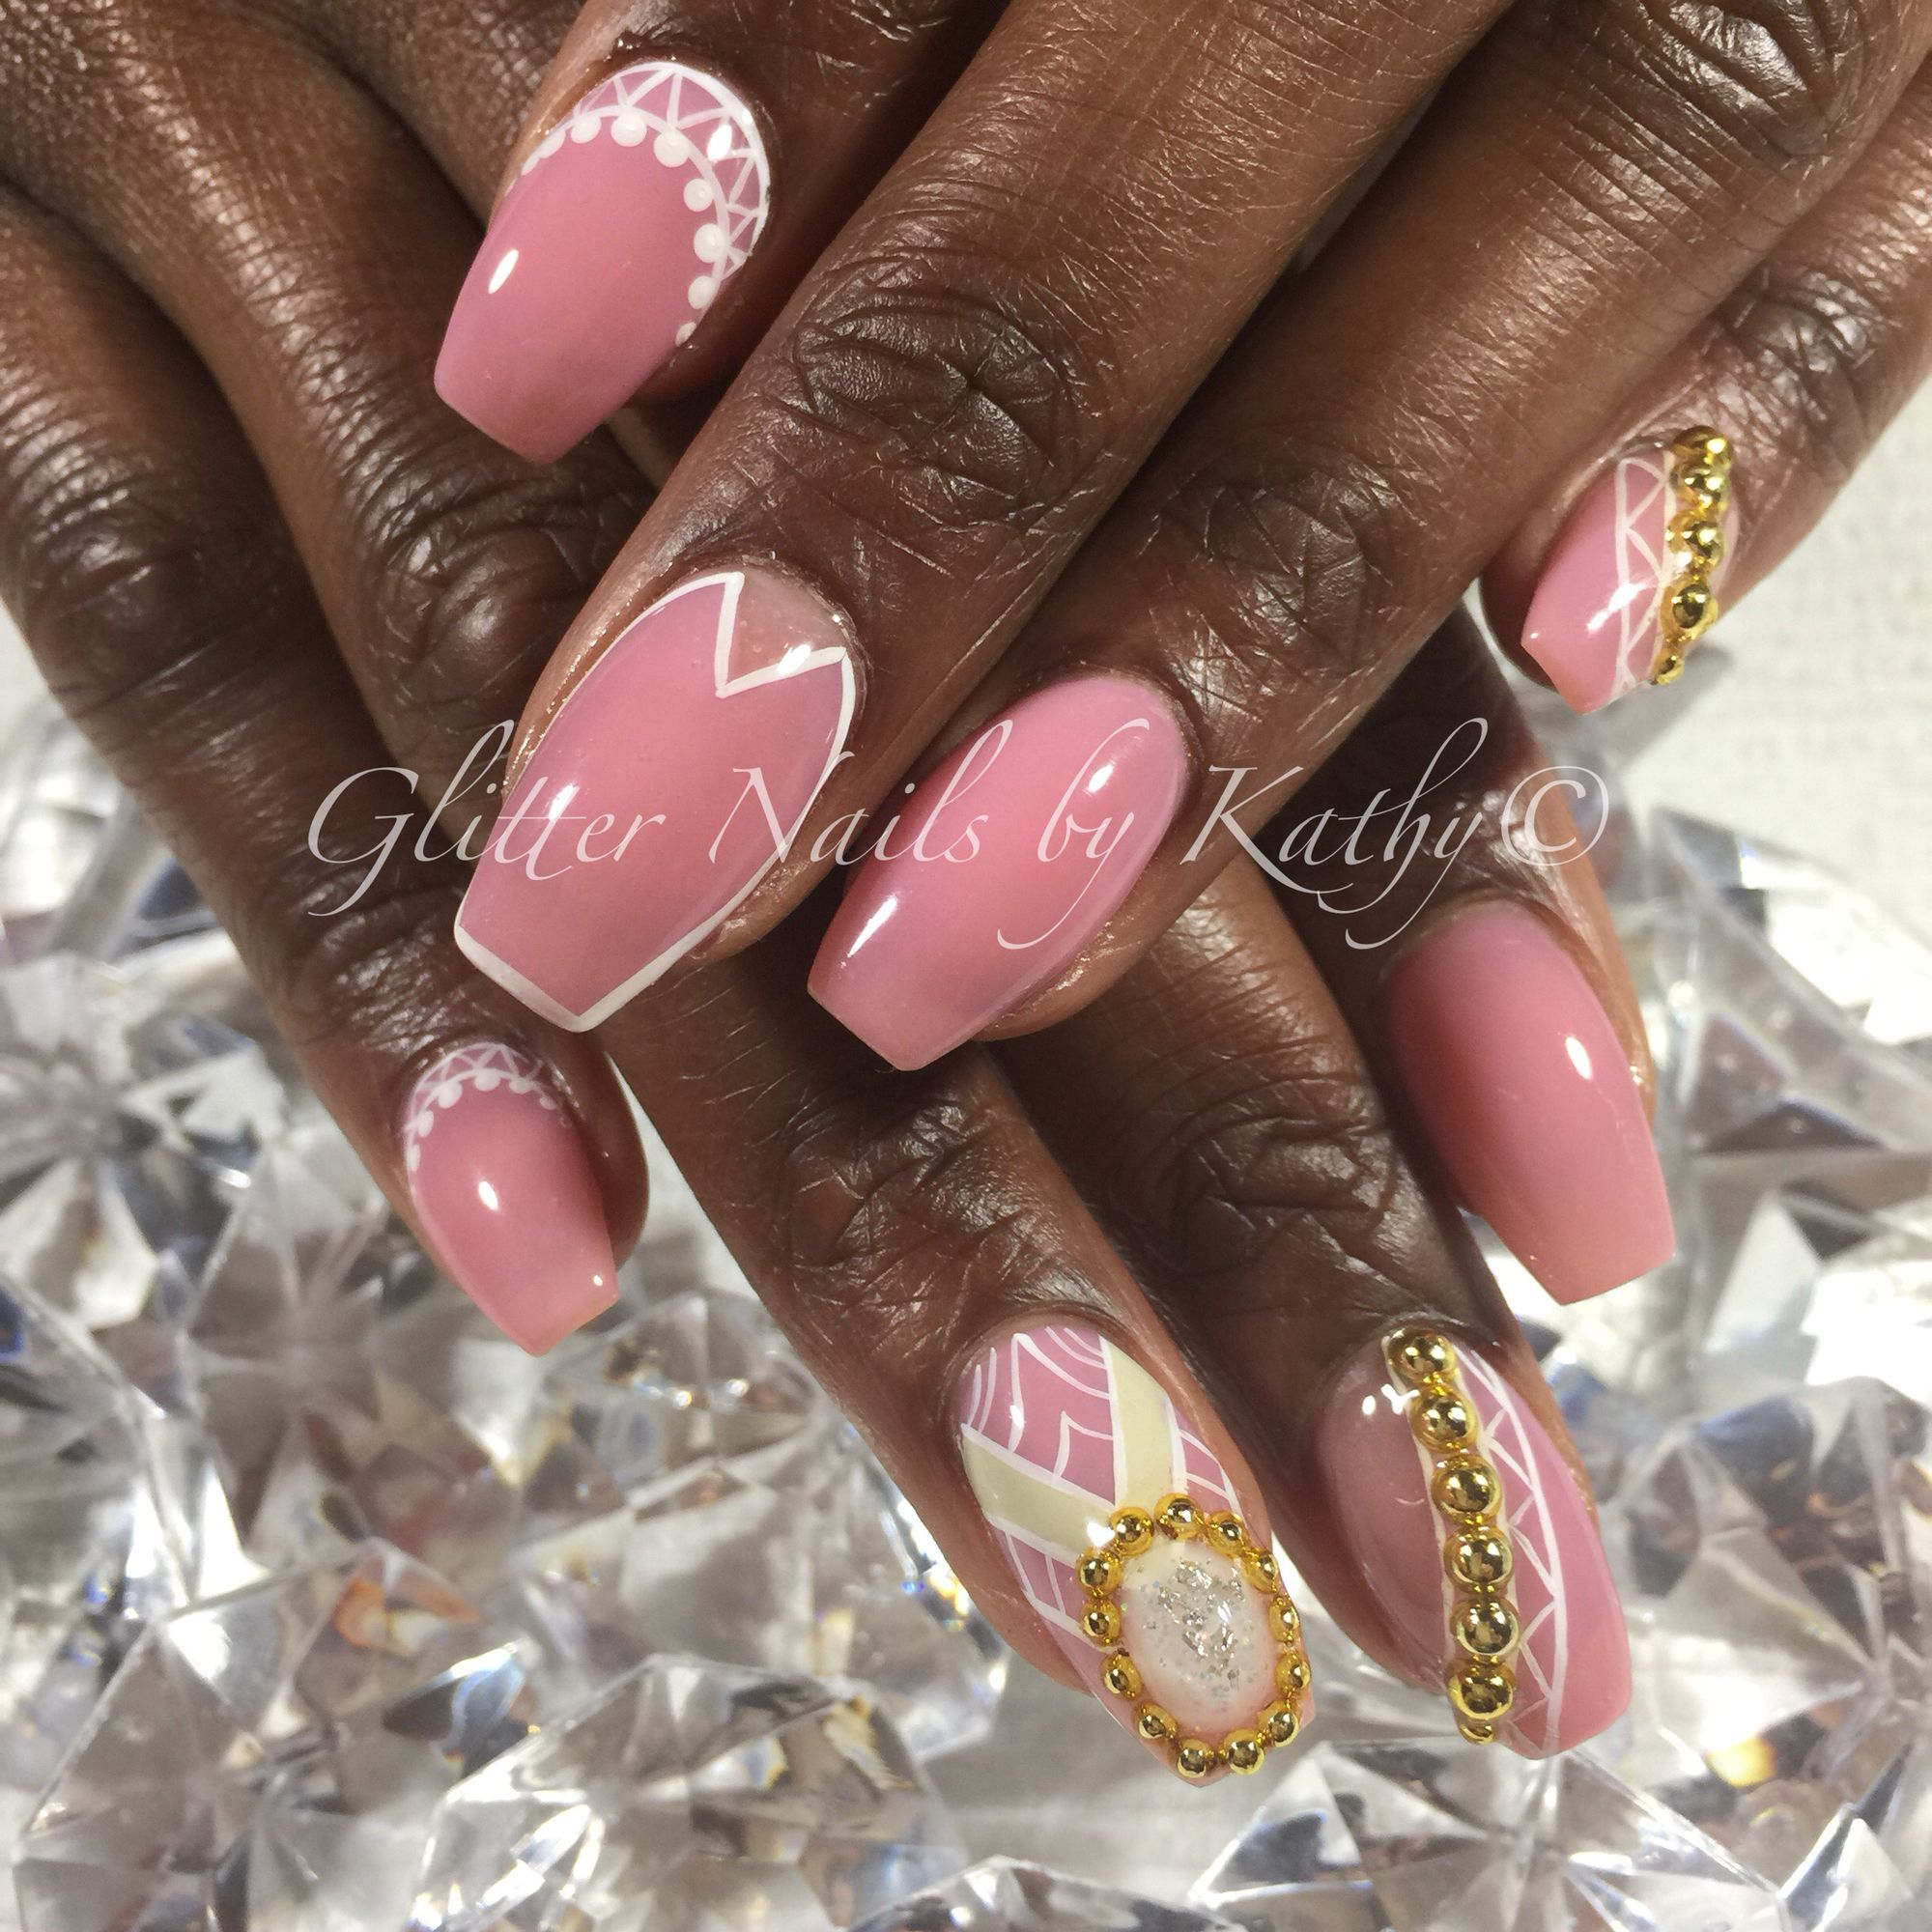 For appointment contact me 3472444257. Located in